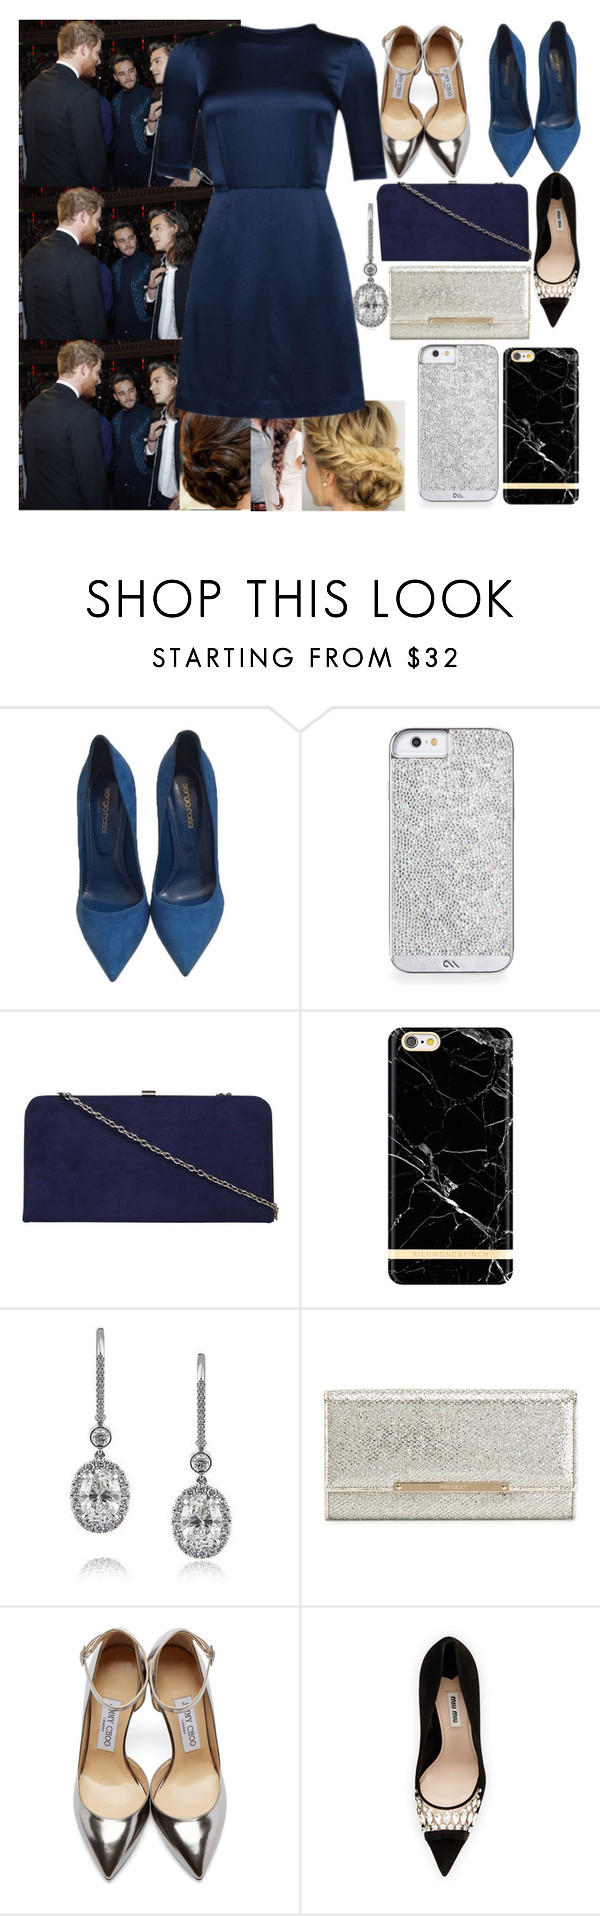 """""""Meeting Prince Harry With Harry (and others members of One Direction) Part 3"""" by angelbrubisc ❤ liked on Polyvore featuring Sergio Rossi, Dorothy Perkins, Mark Broumand, Jimmy Choo, Miu Miu and Marc by Marc Jacobs"""